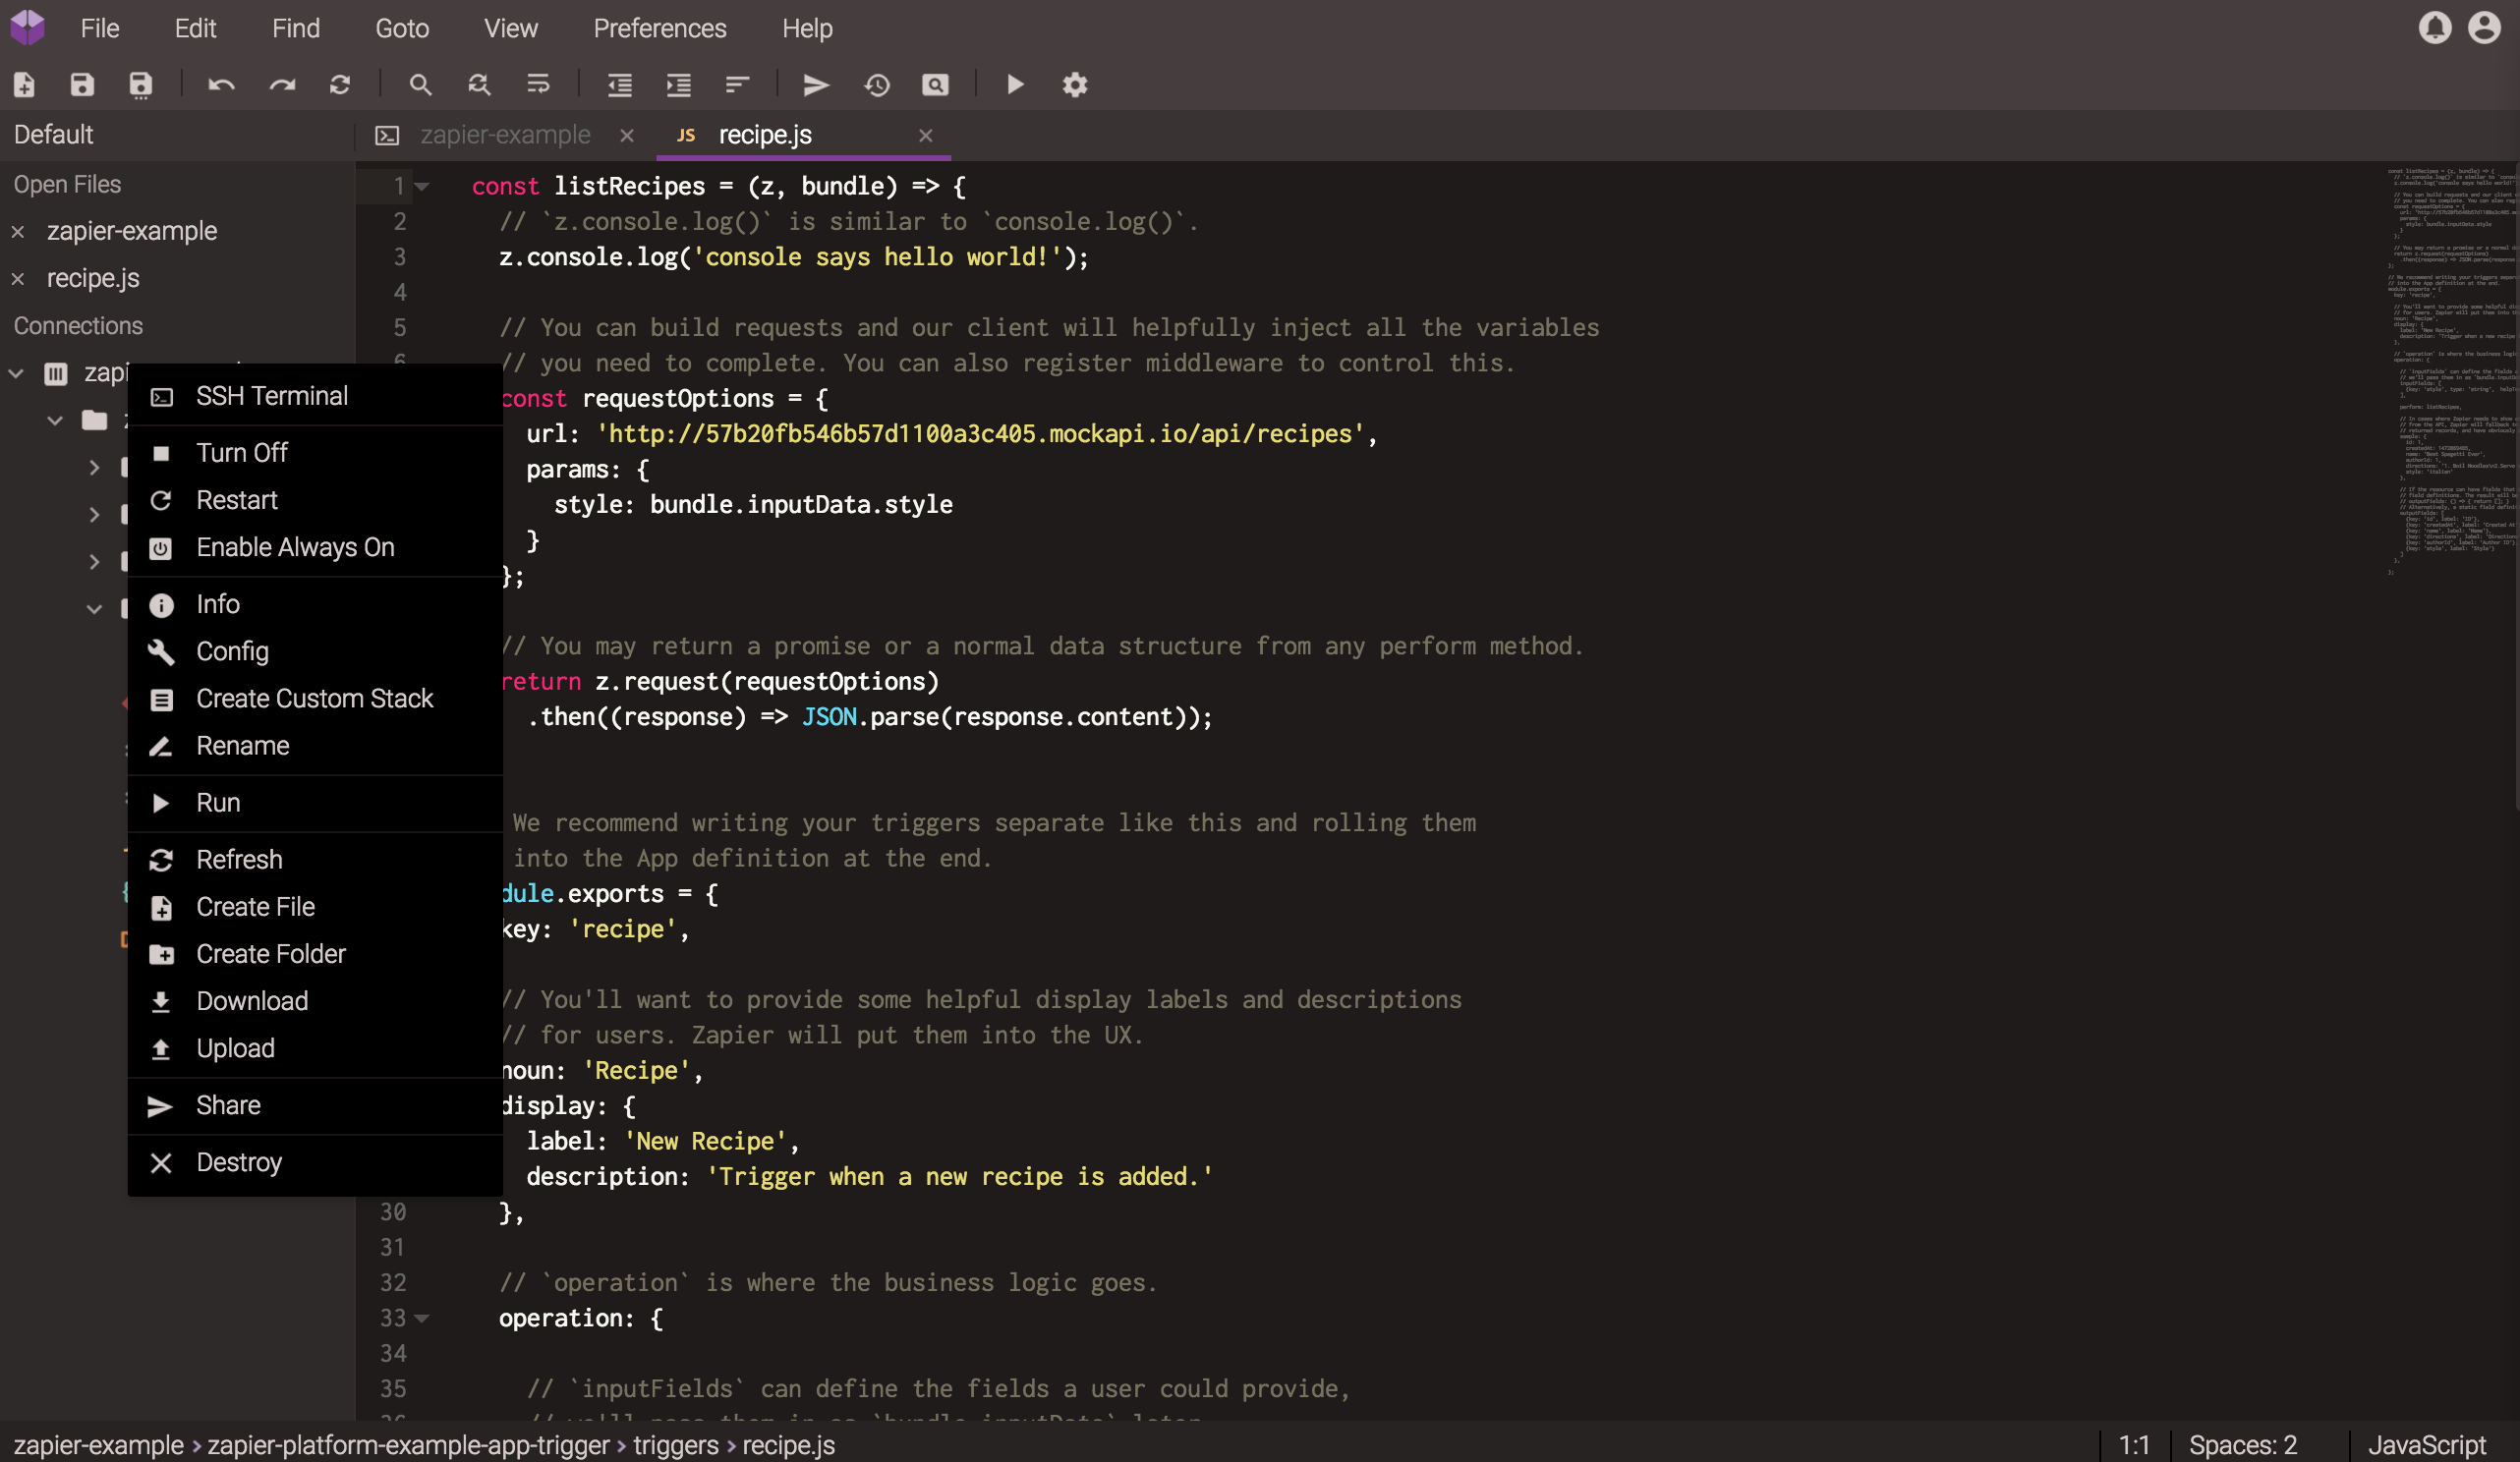 Full CodeAnywhere editor screen